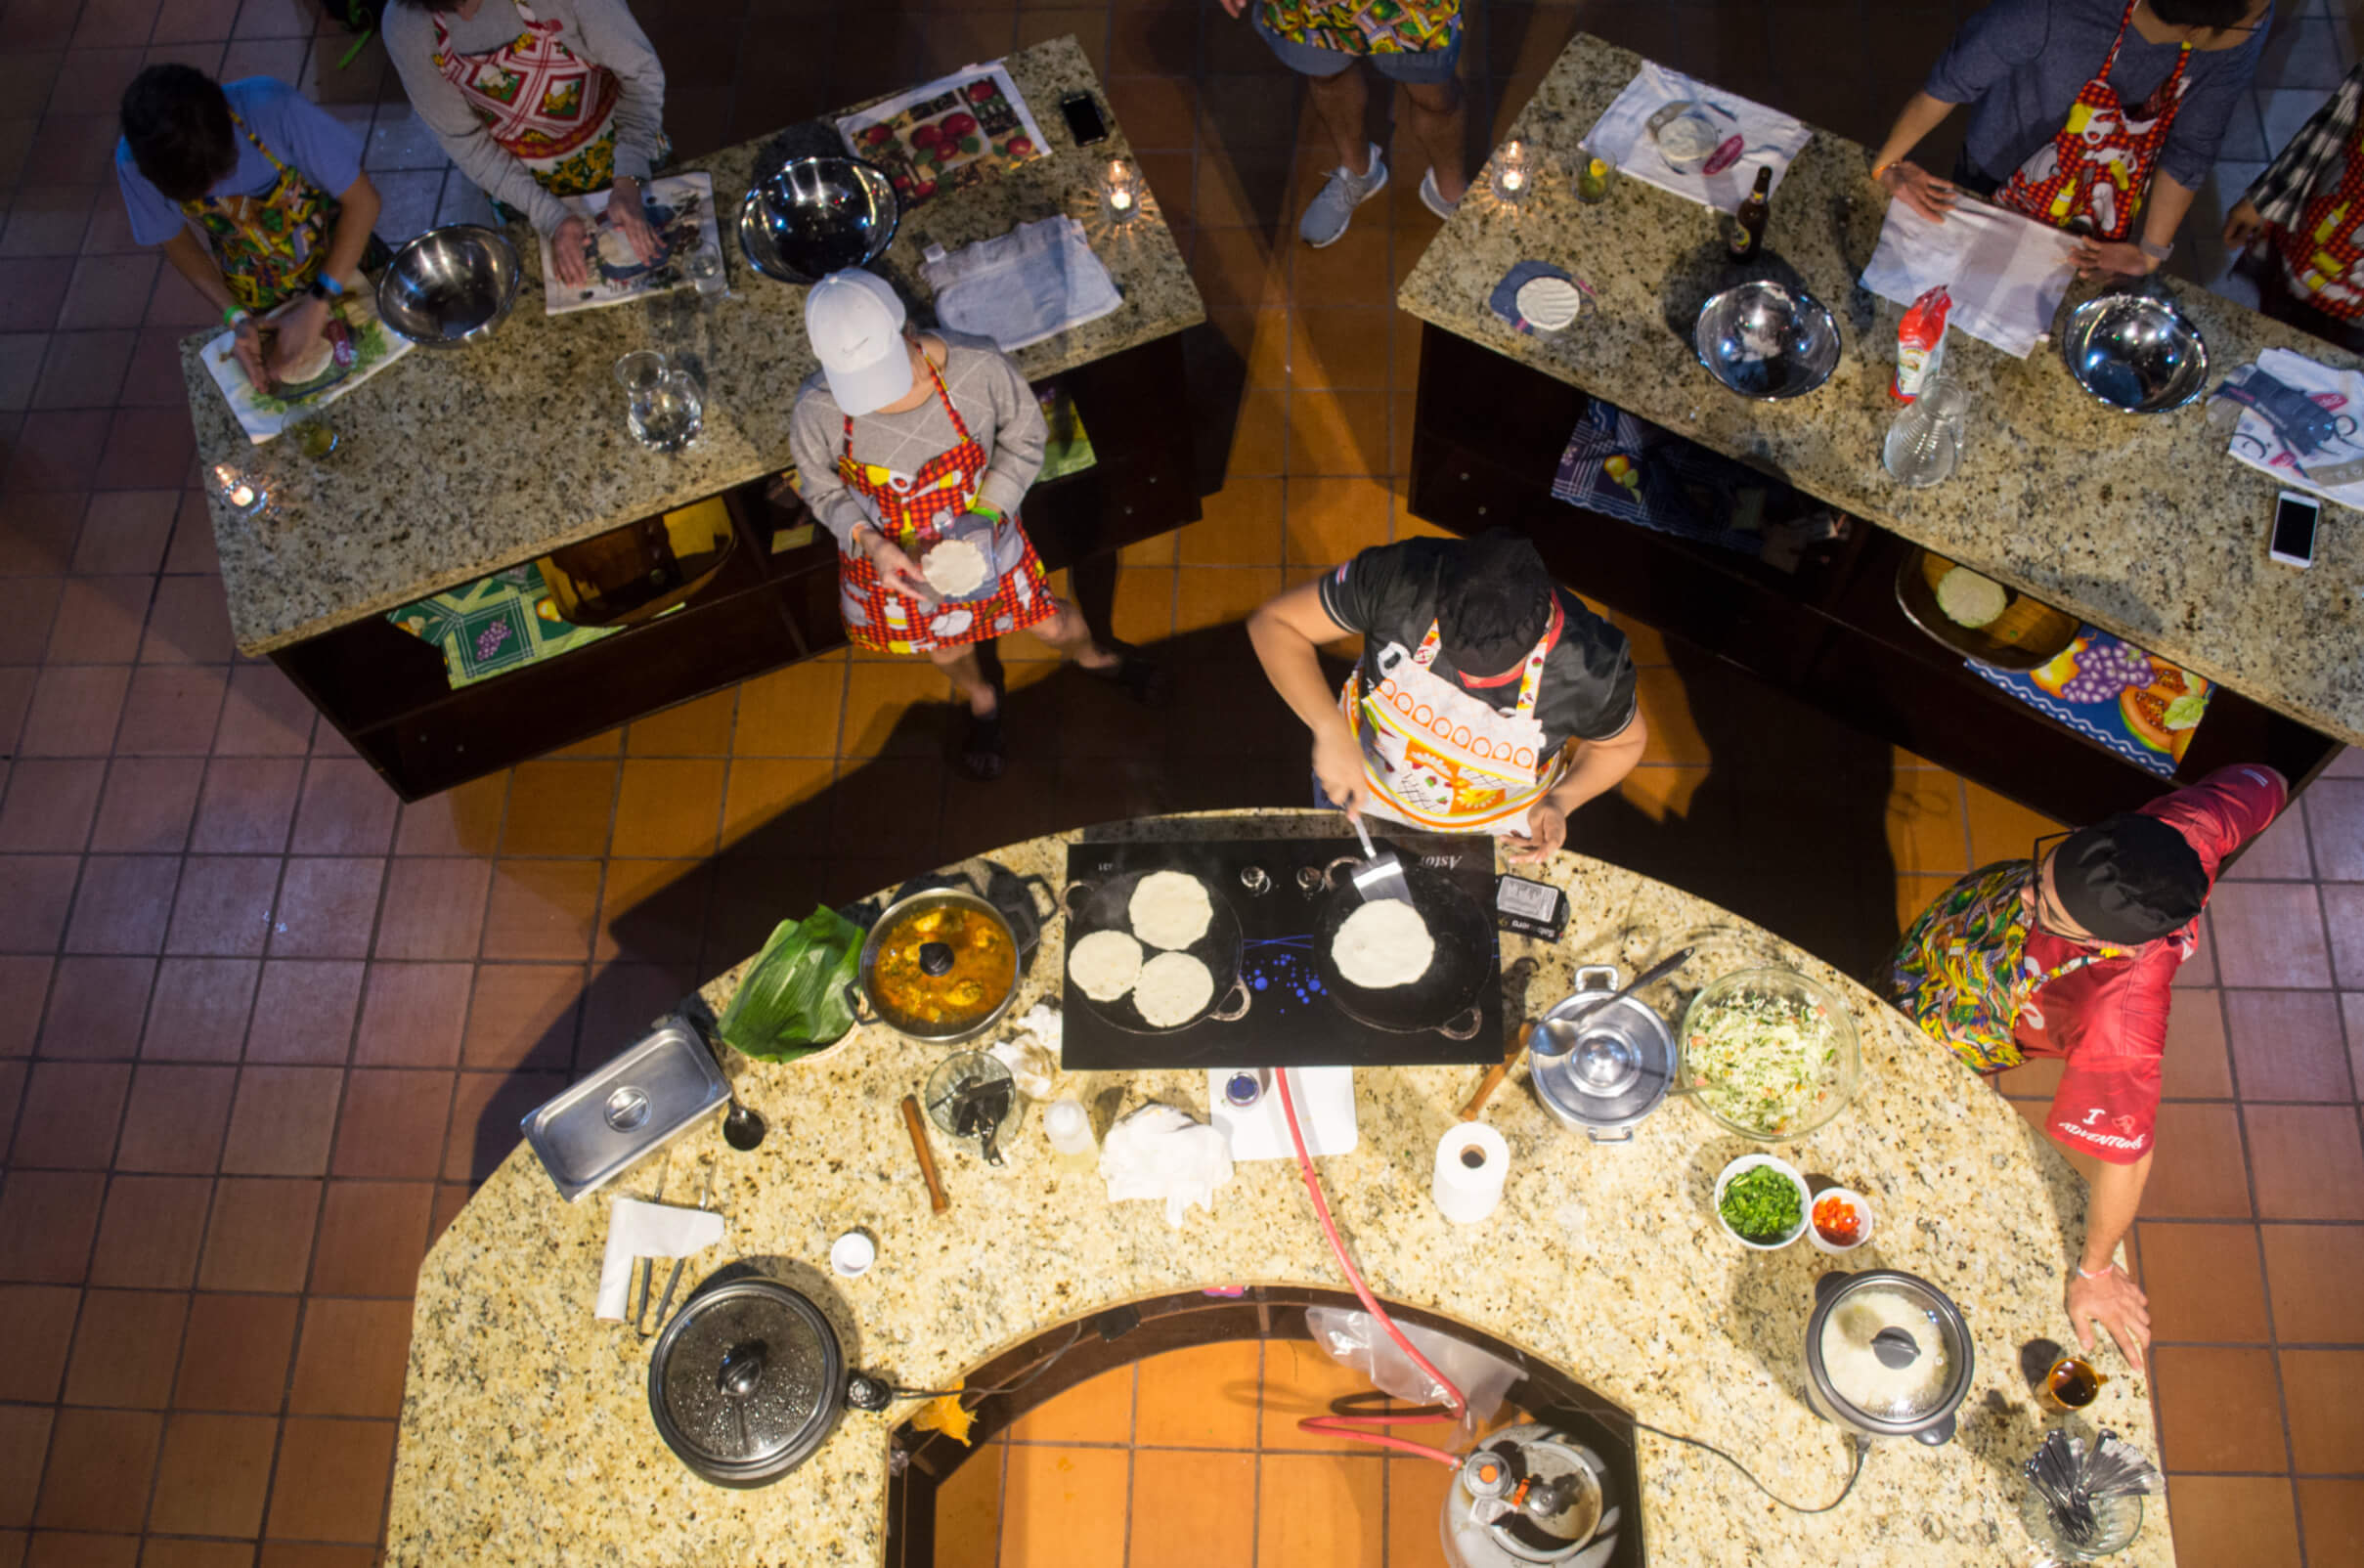 Try Costa Rica cooking class and eat like a local with Desafio